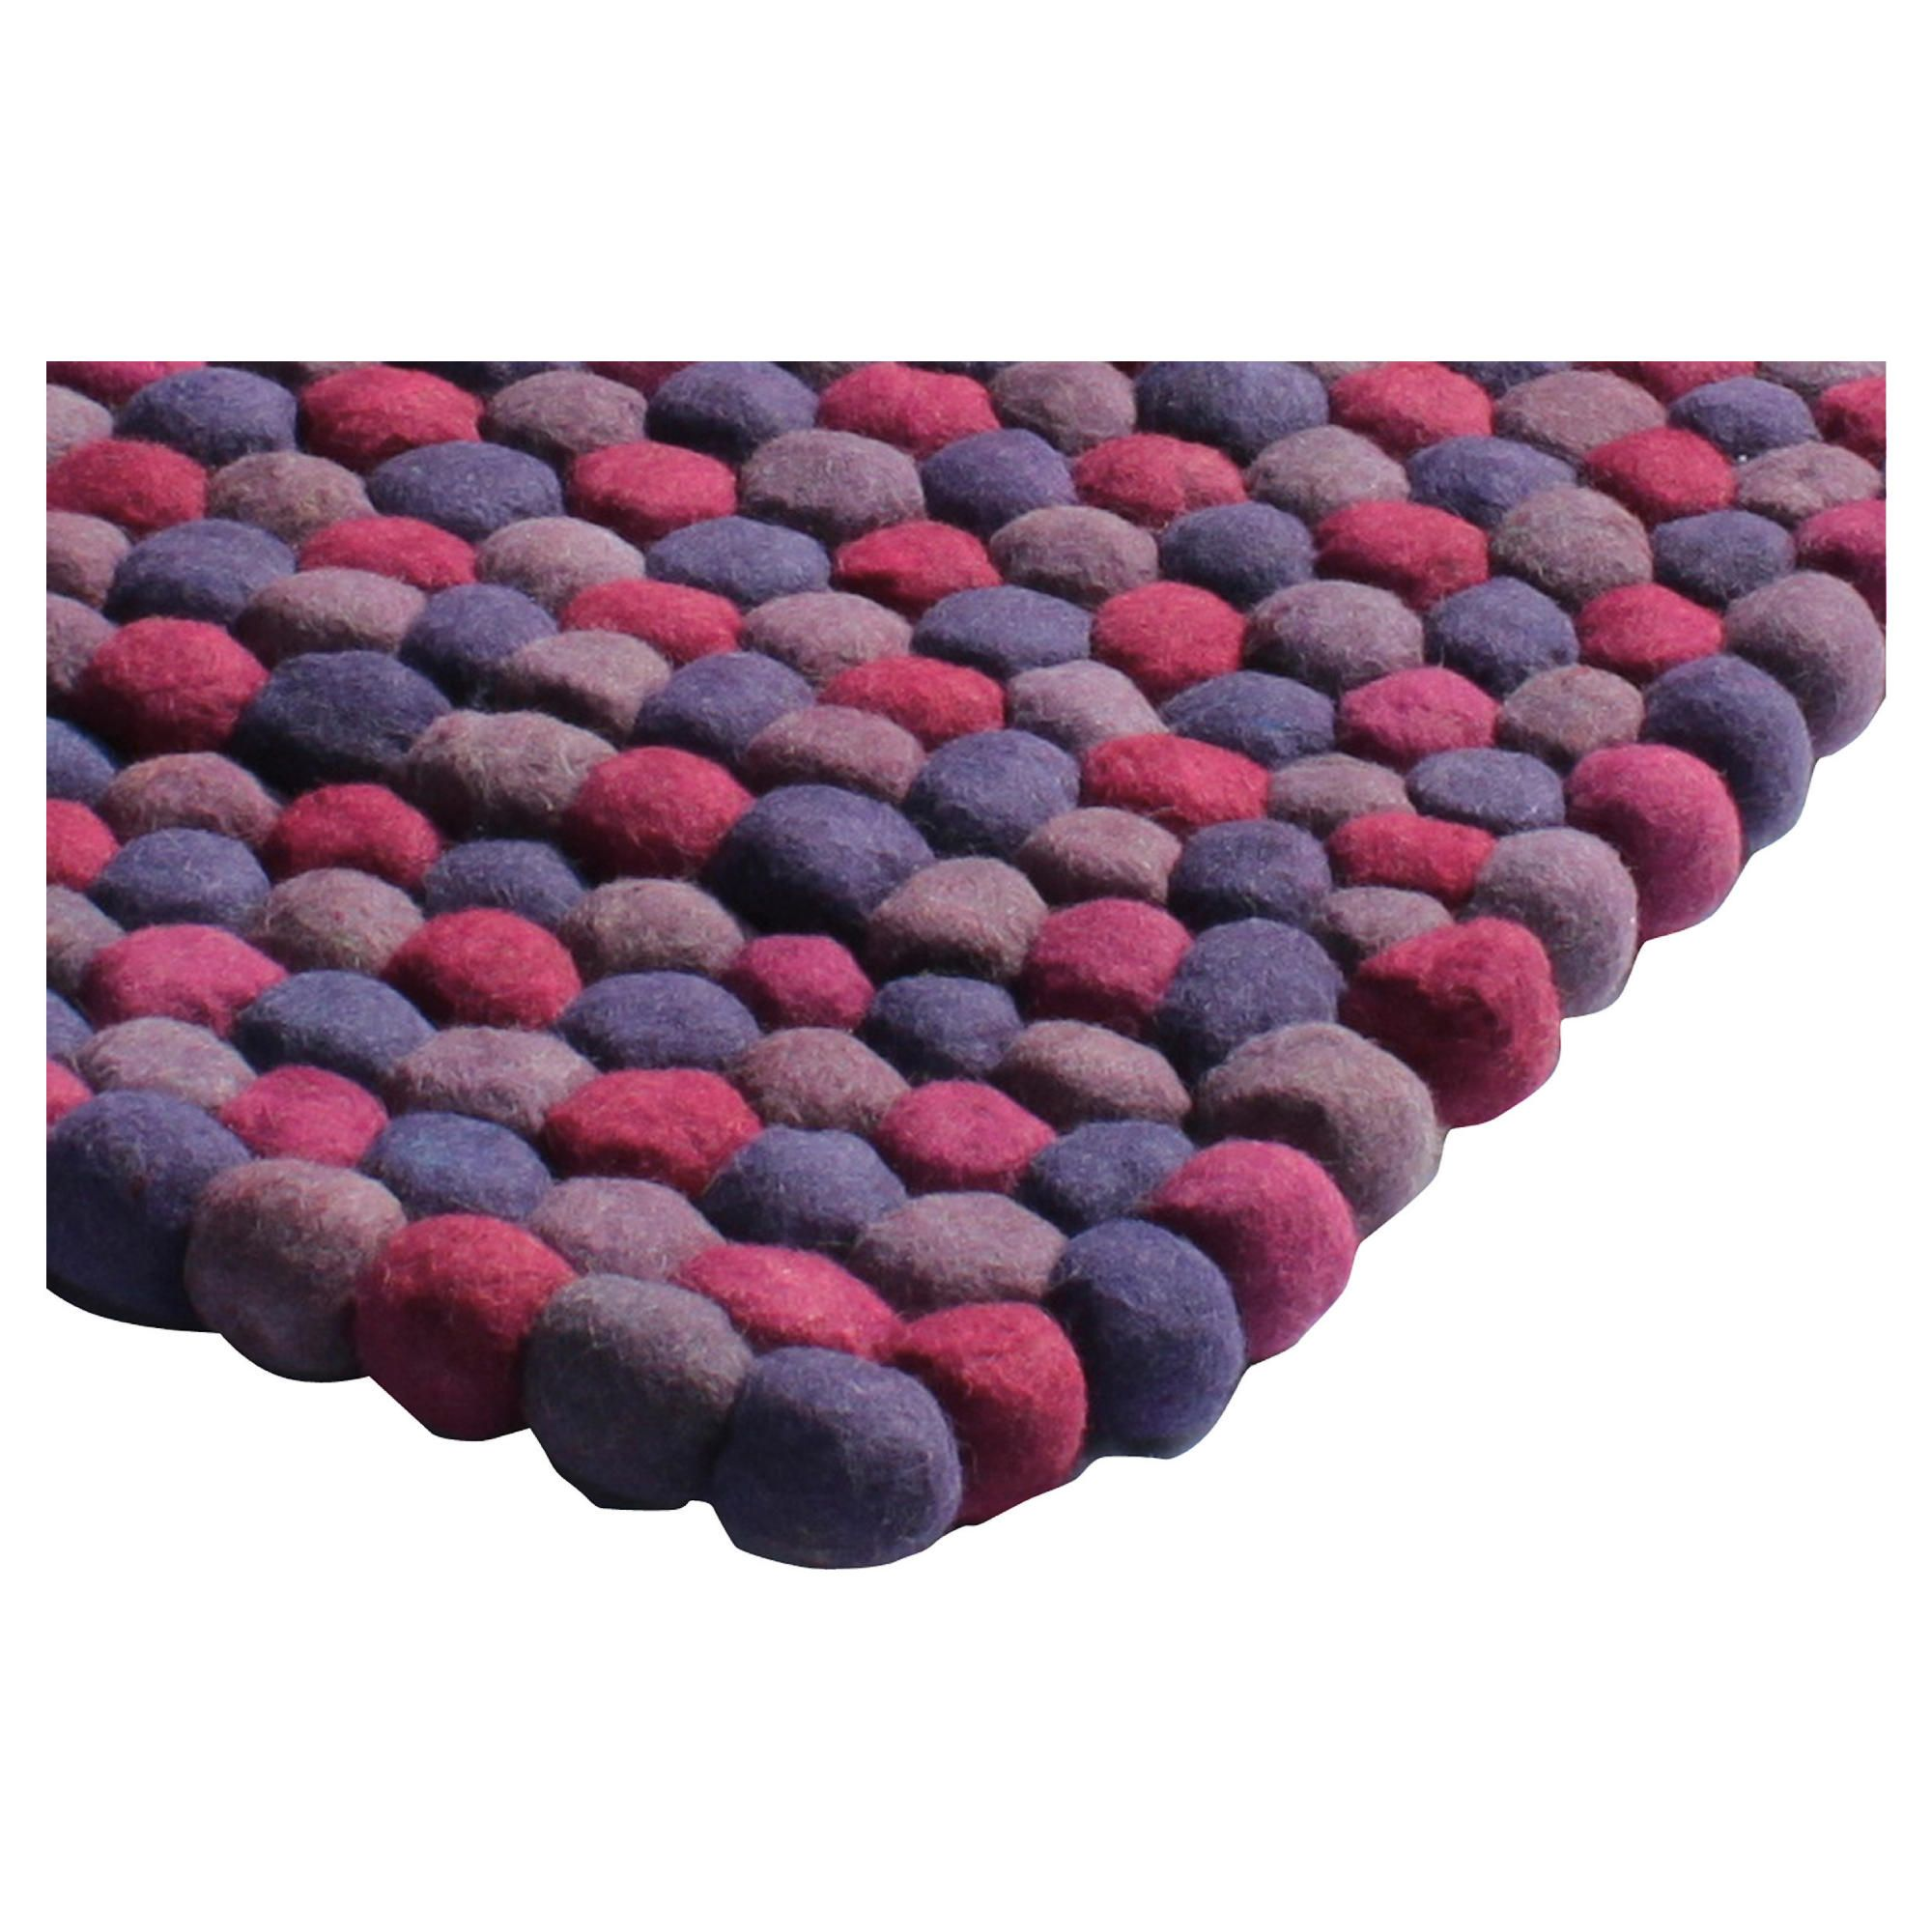 The Ultimate Rug co. Rocks Rug Plum 120x170cm at Tesco Direct